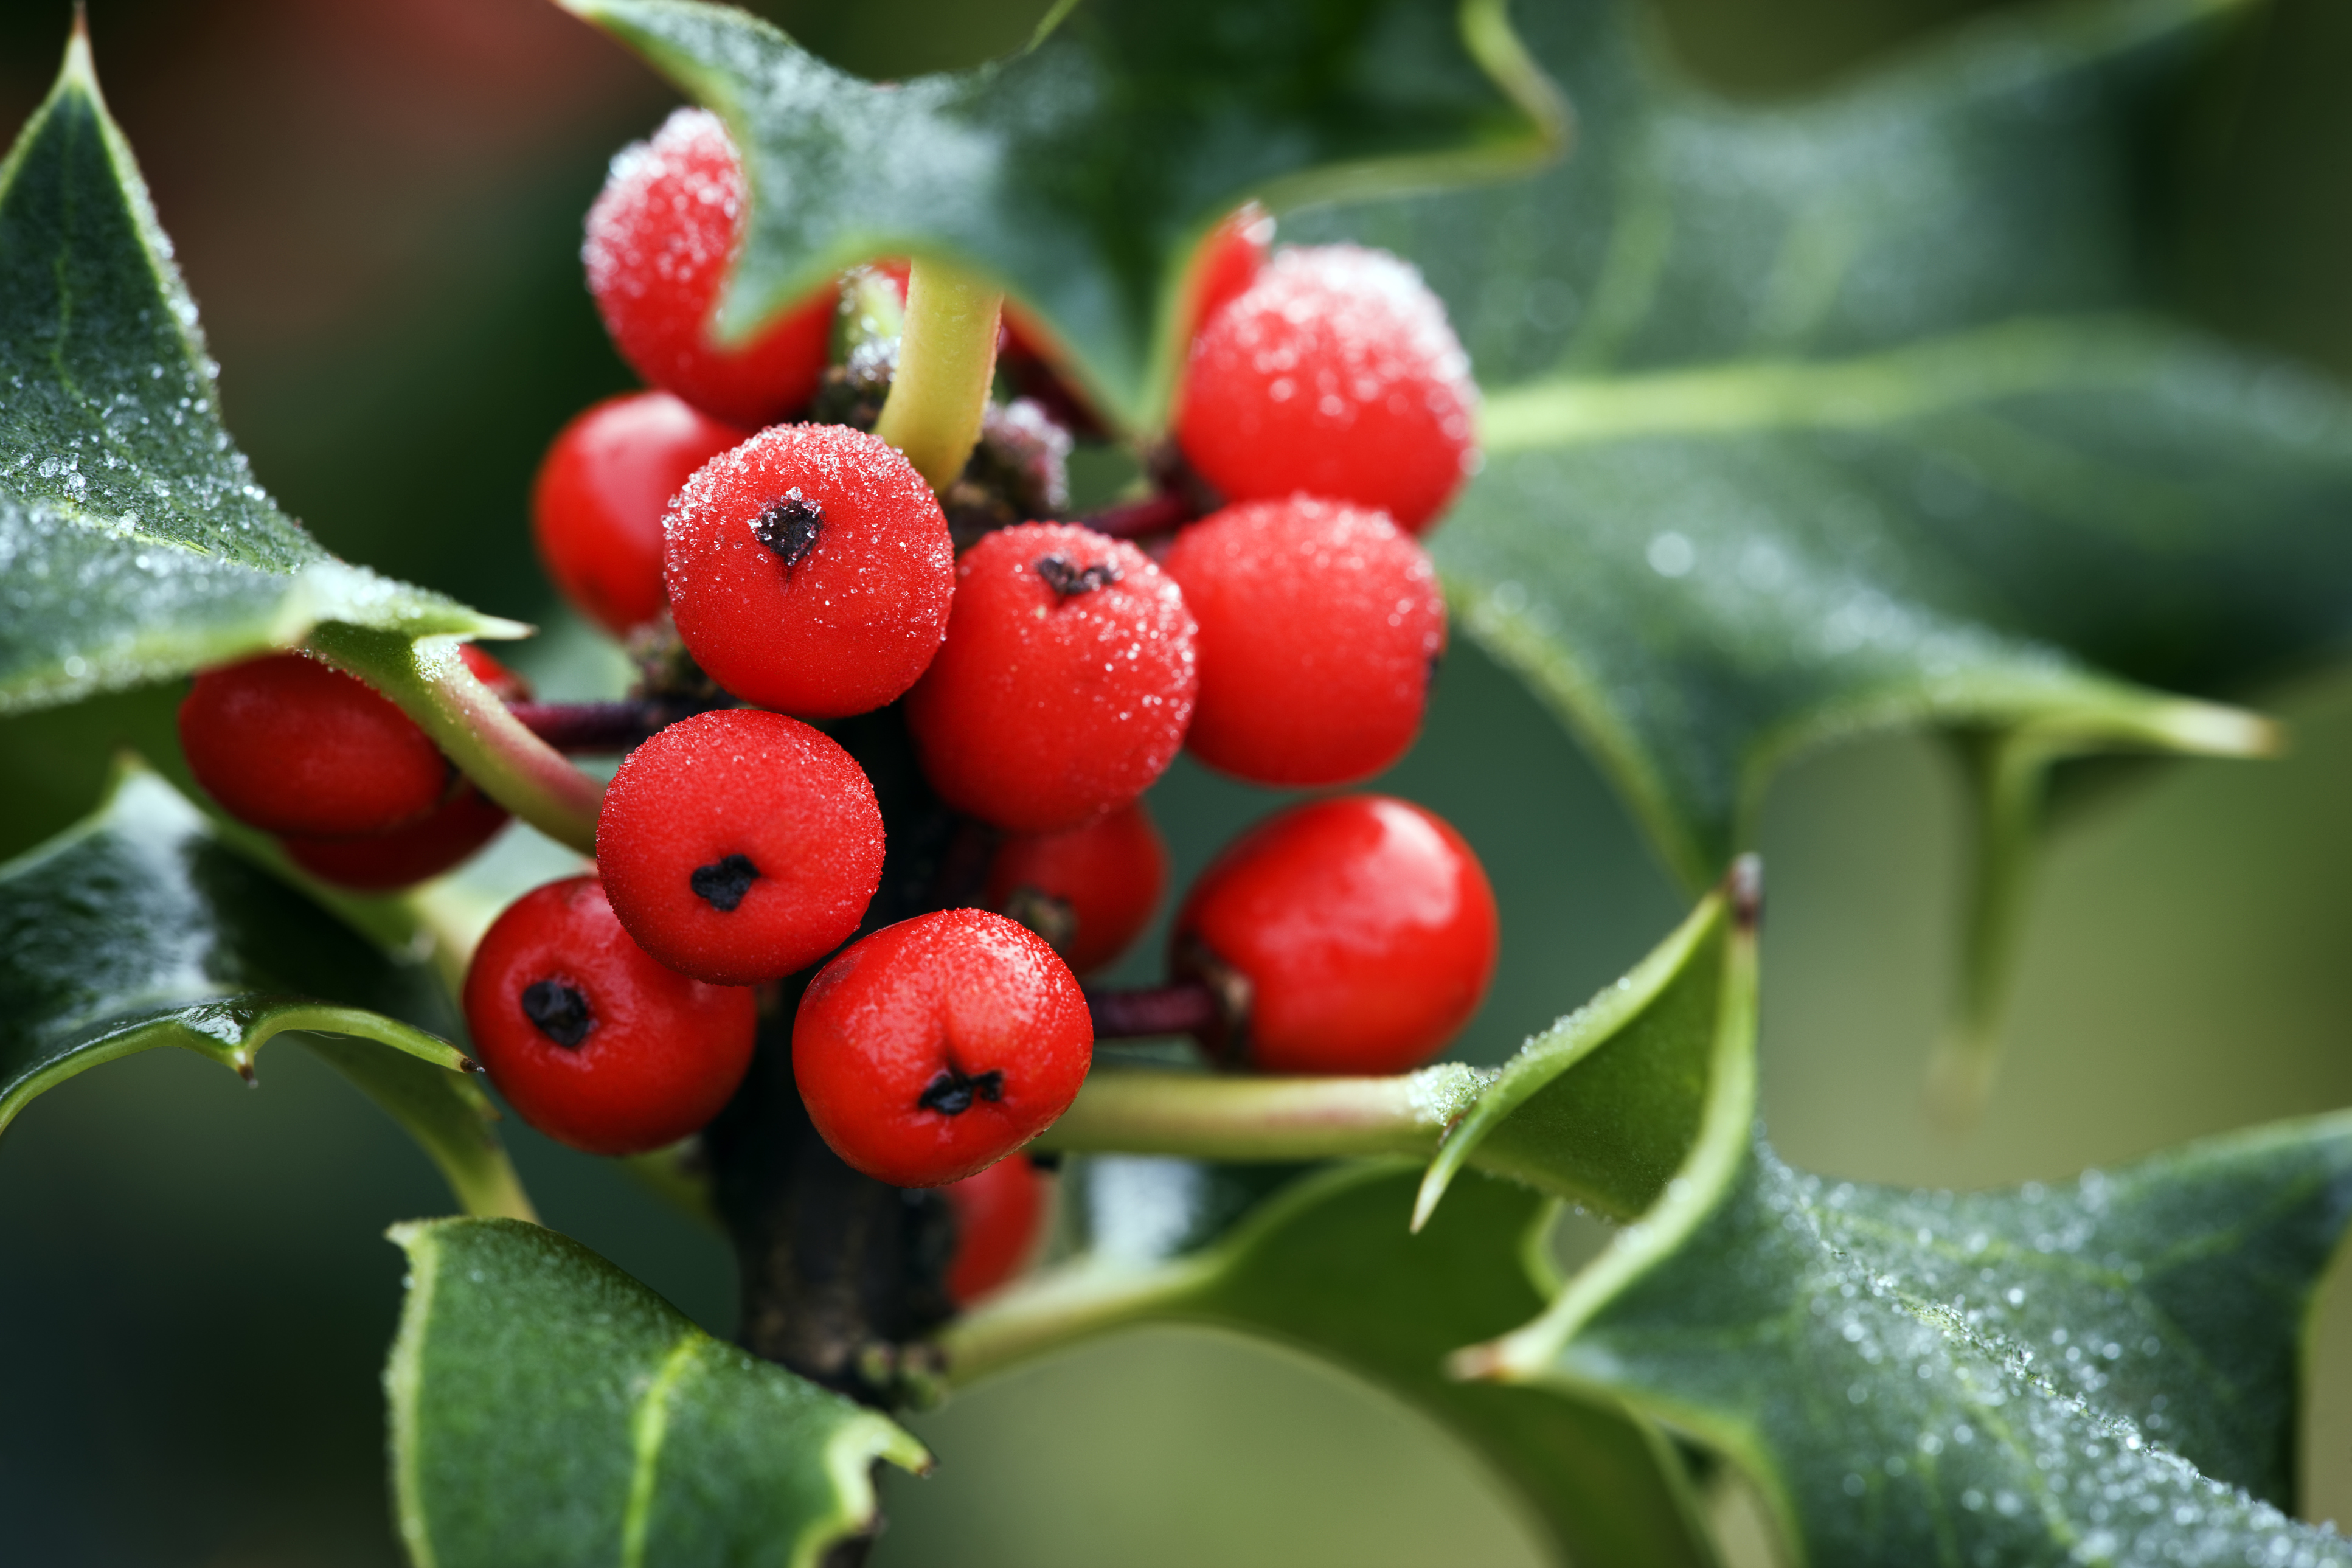 History of Holly - Why do we decorate with holly at